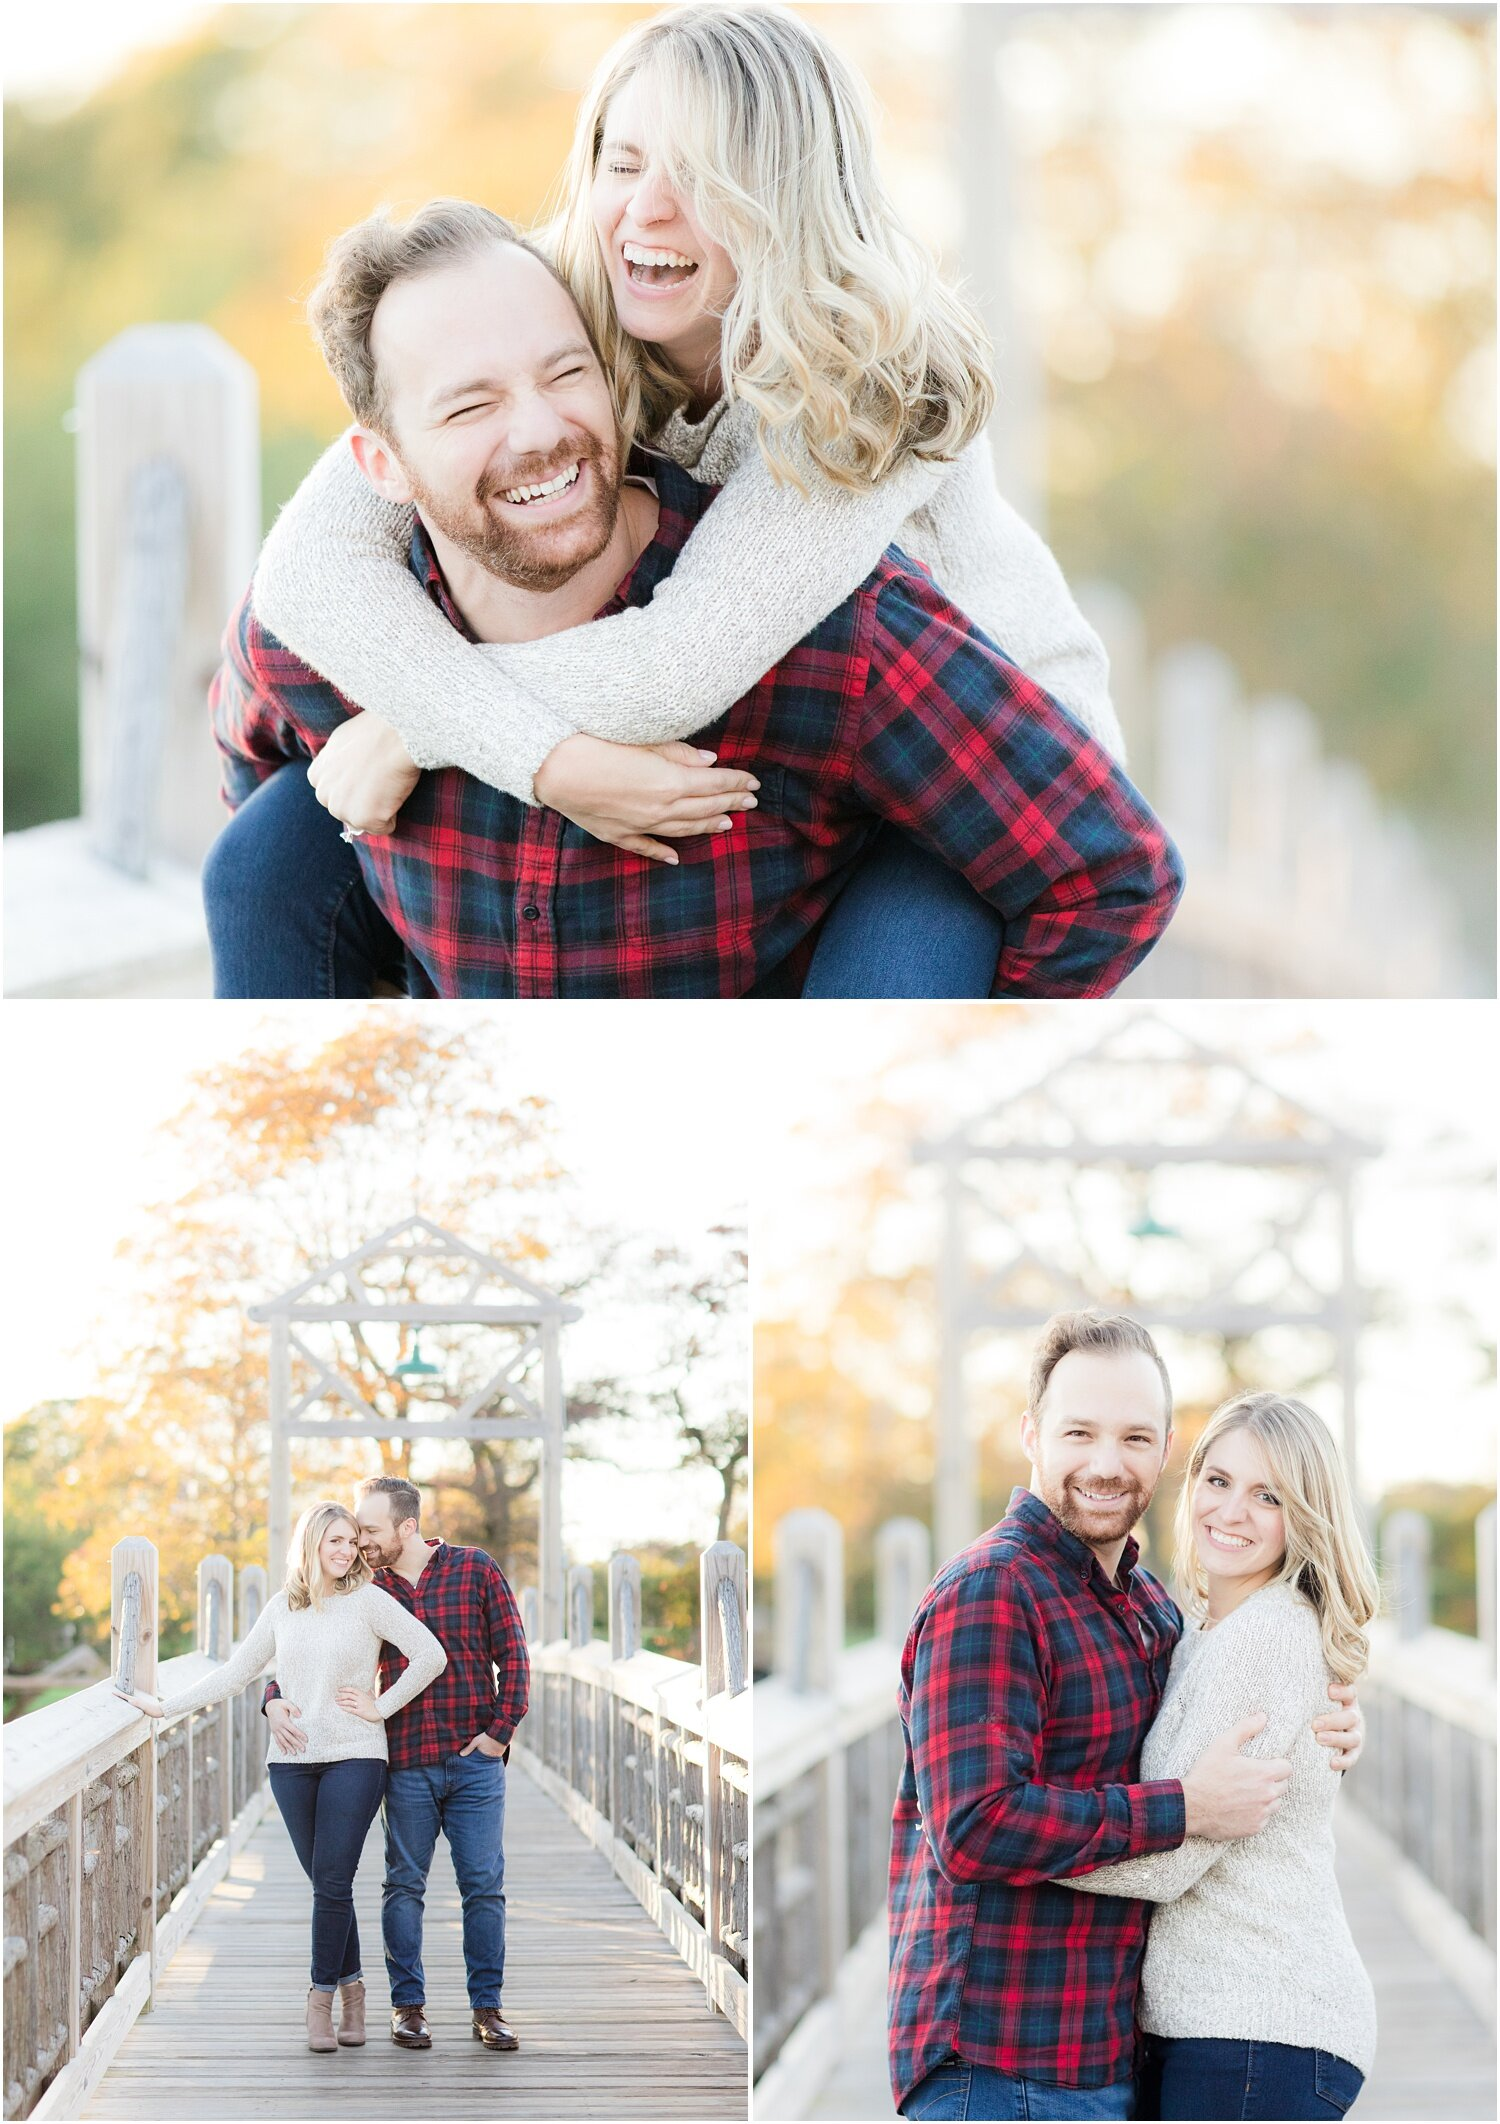 Fun engagement photos in spring lake, NJ.